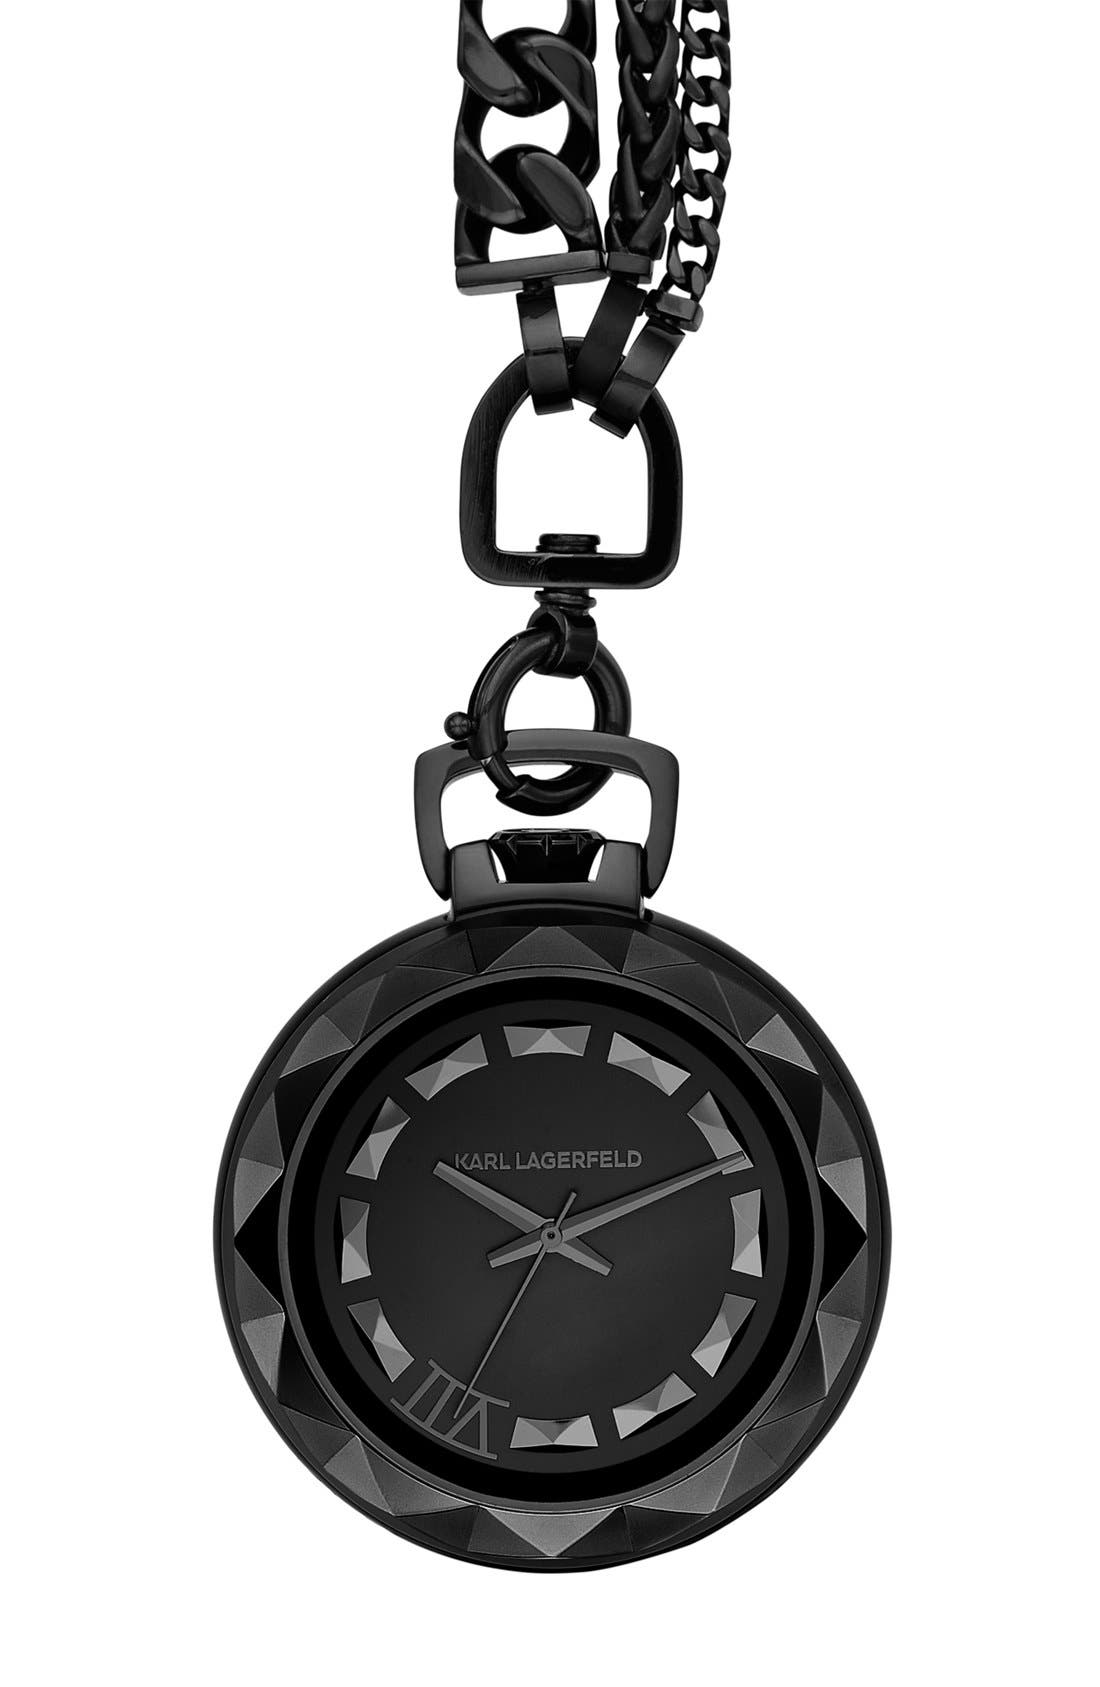 Main Image - KARL LAGERFELD '7' Pocket Watch, 45mm